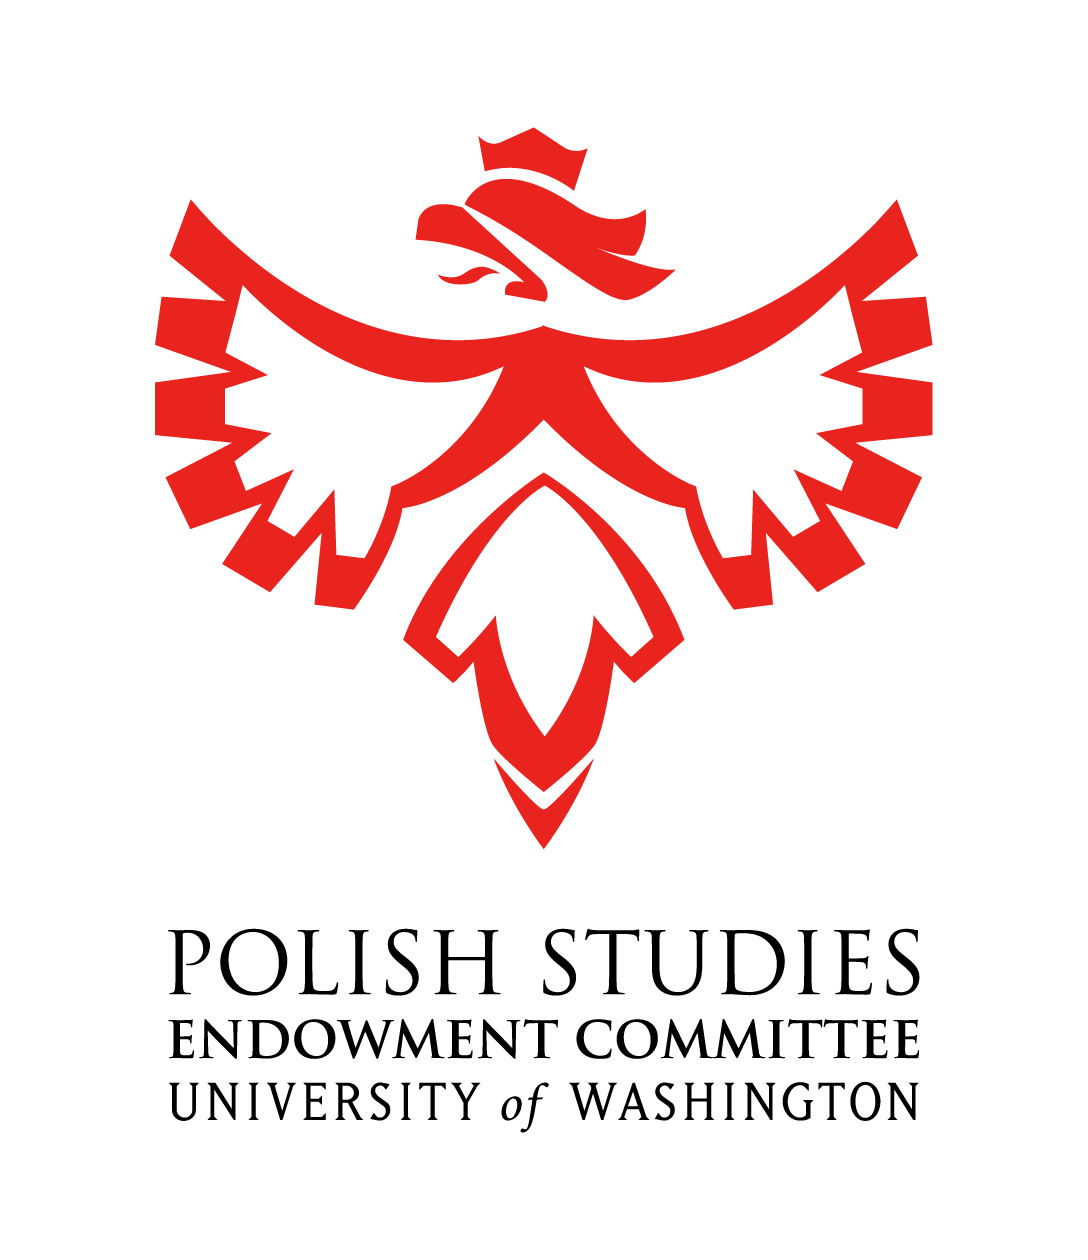 Husky Giving Day on April 8: Support UW Polish Studies!